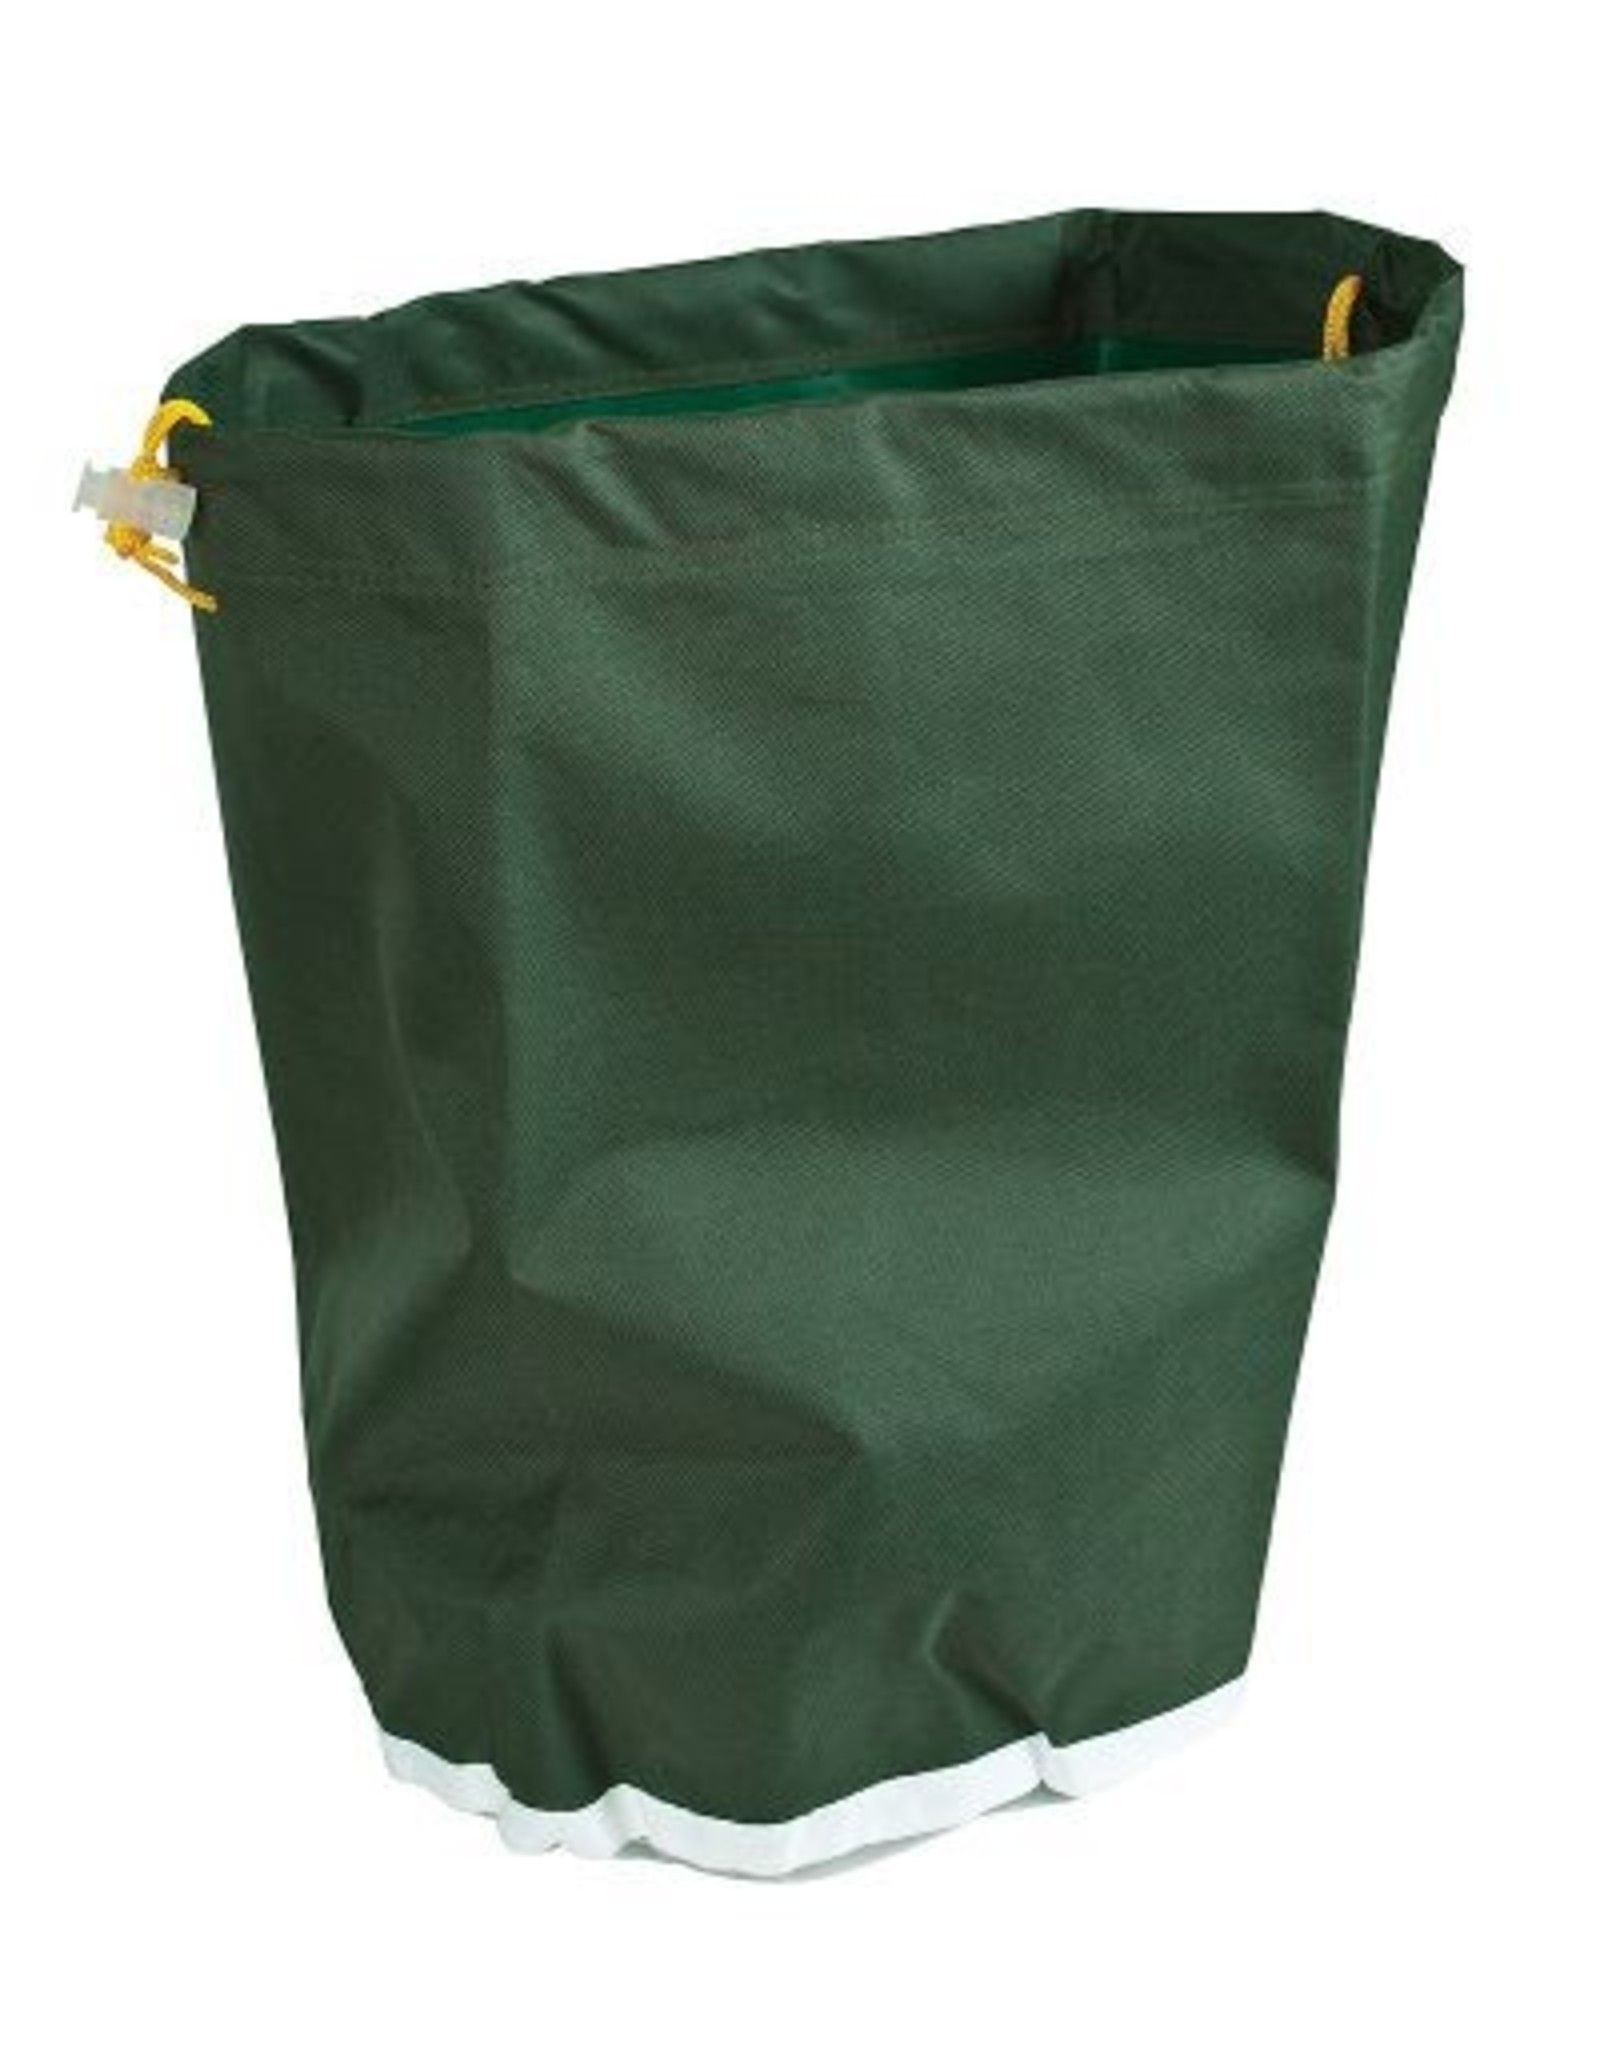 BWGS Micropore Bag 5 gal, 110 Micron Green